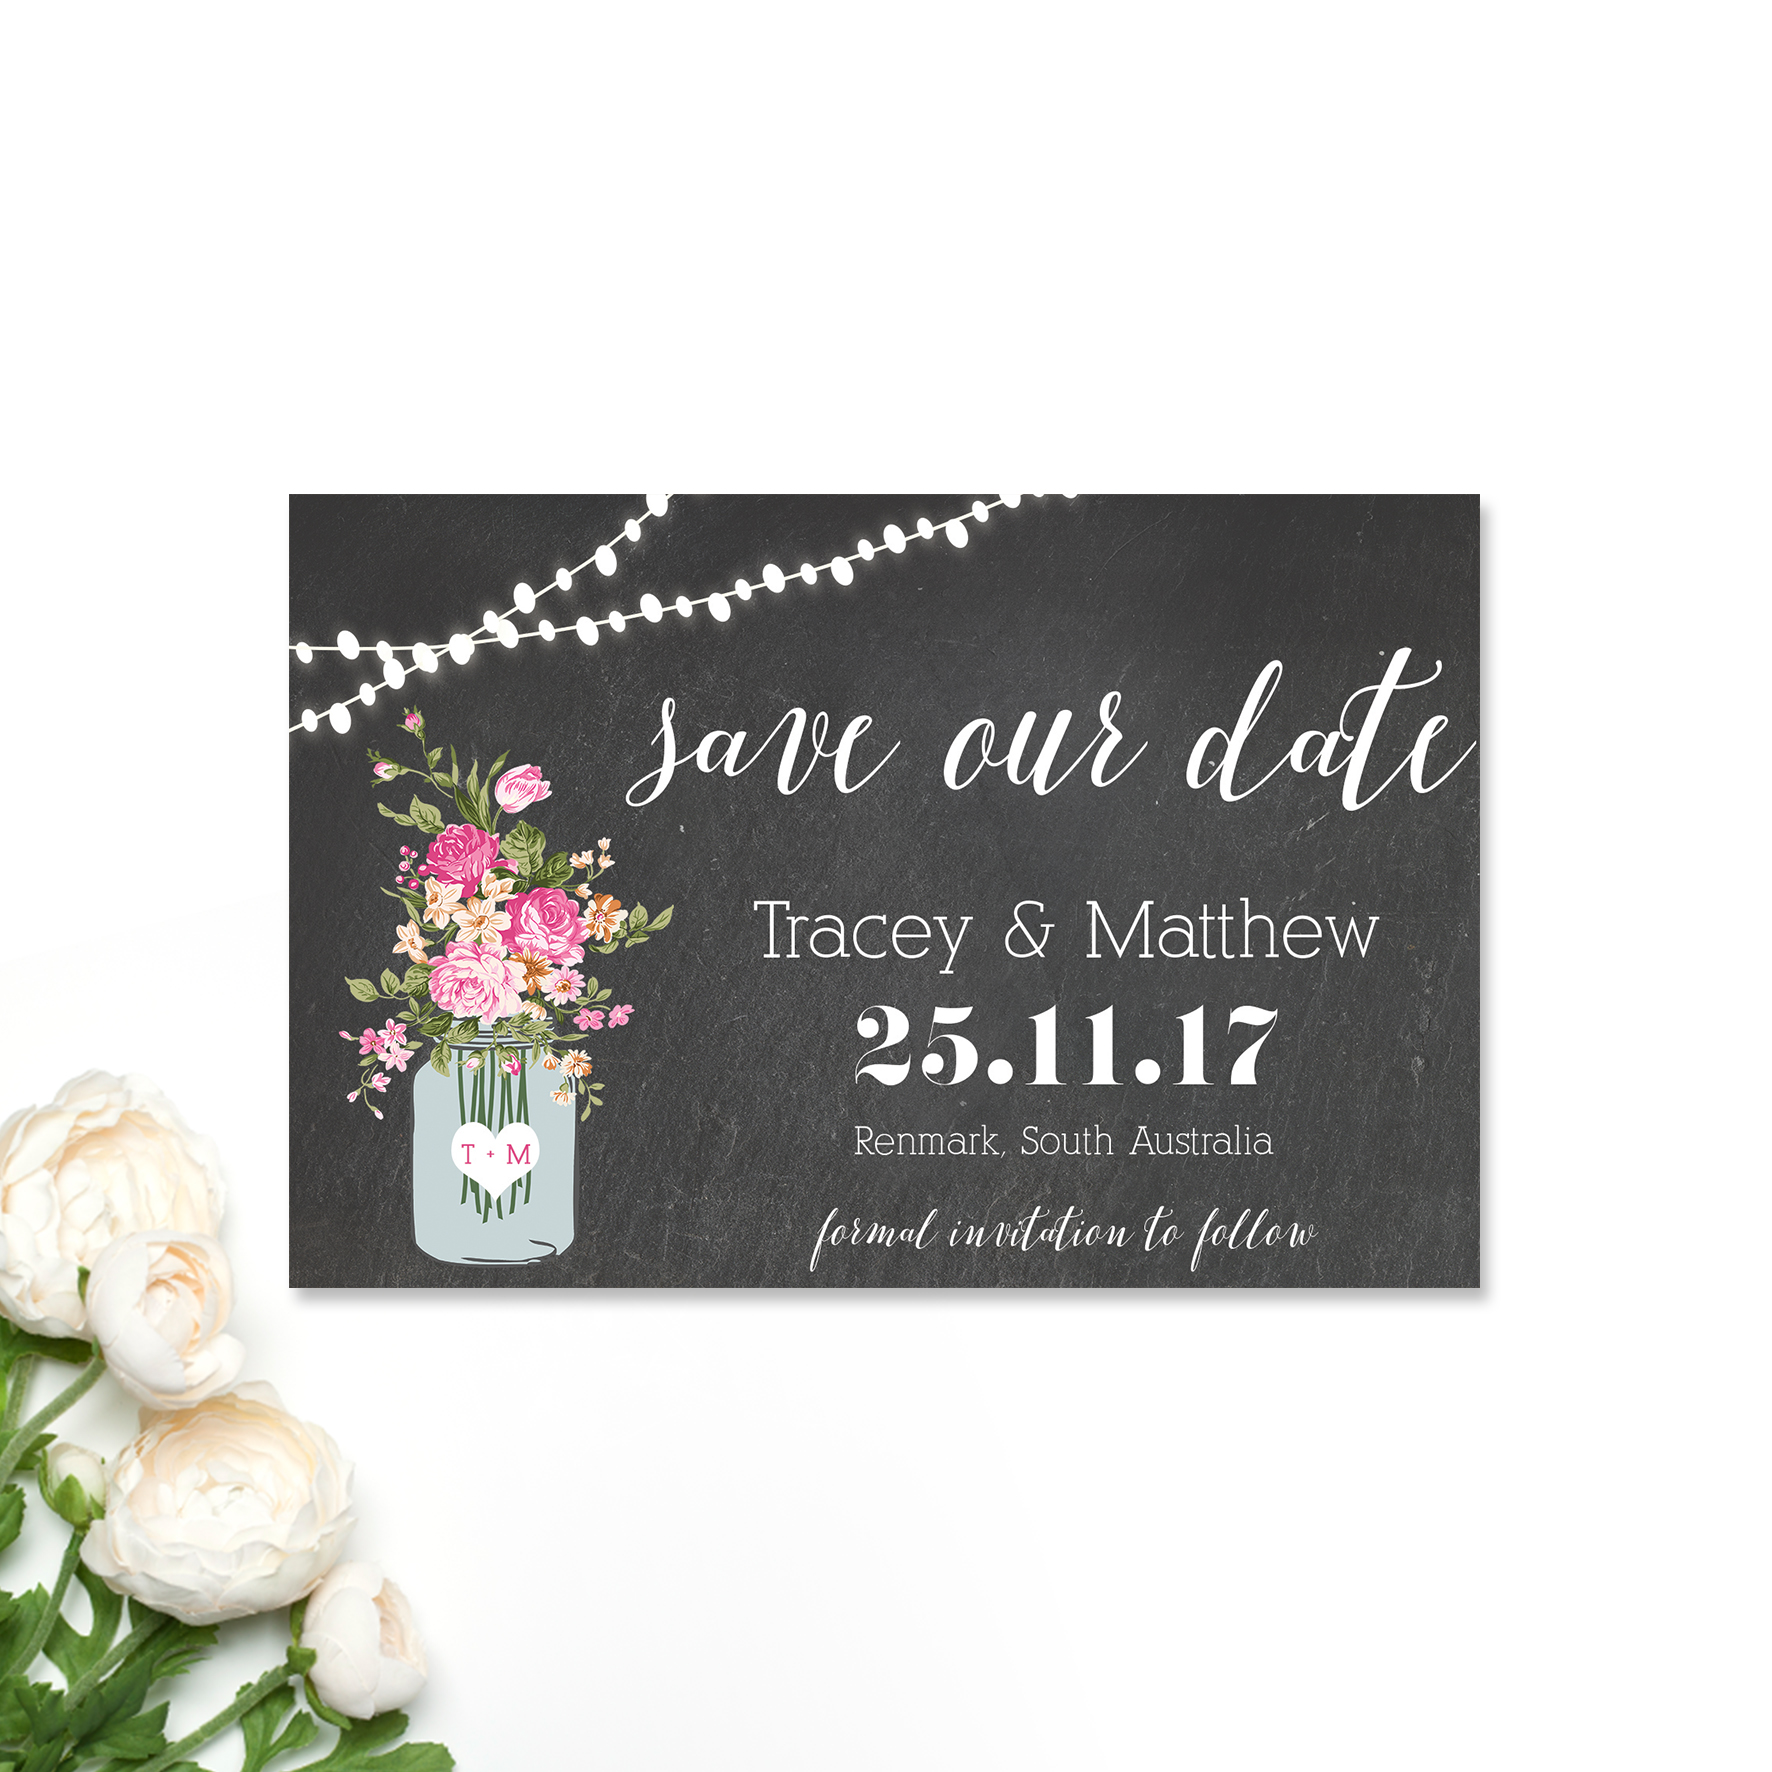 Tracey + Matthew Save the Date Card